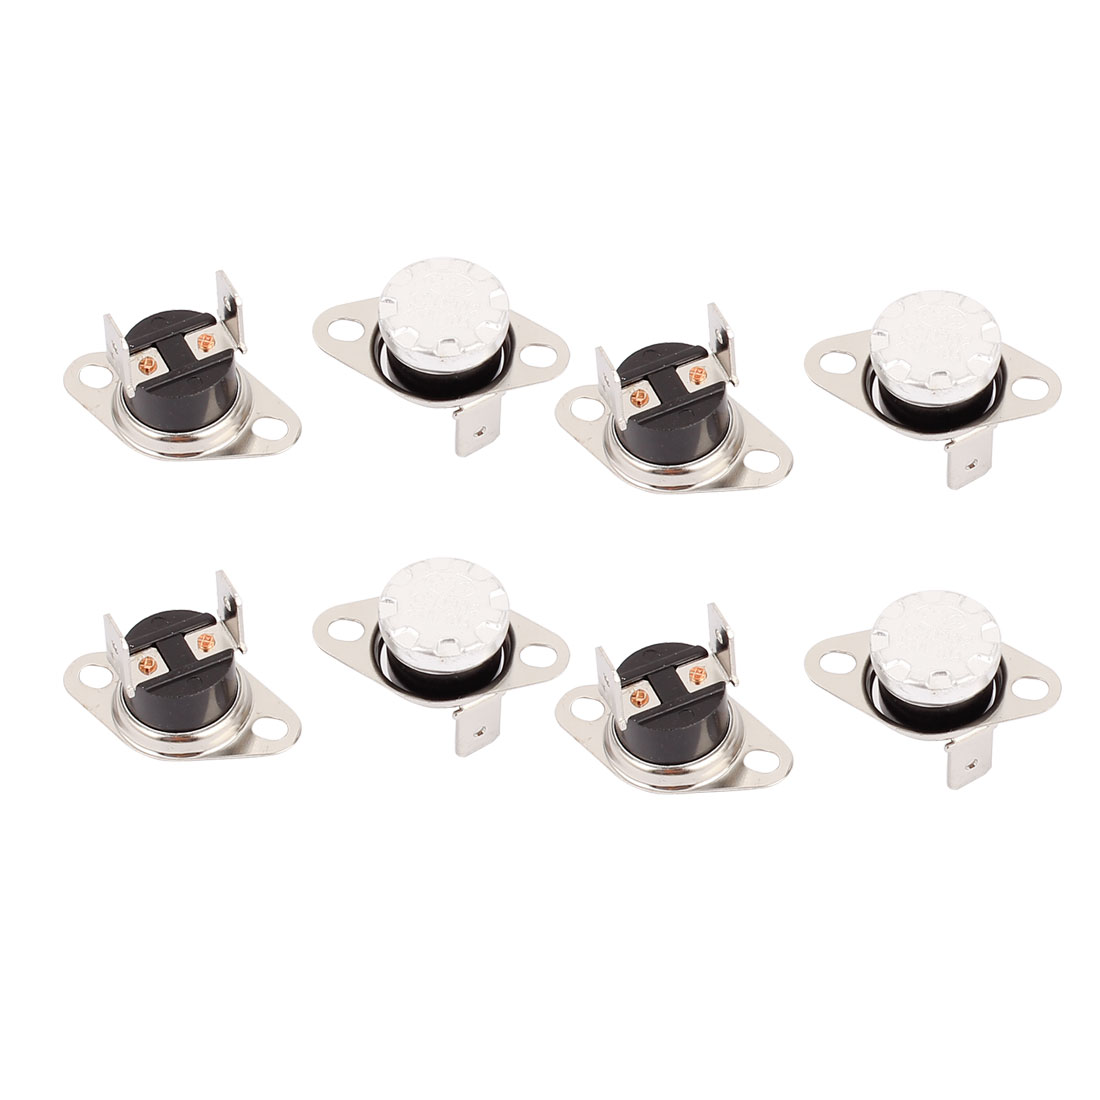 8 Pcs KSD302 Temperature Control Switch Thermostats 250VAC 10A 55 Celsius N.C.